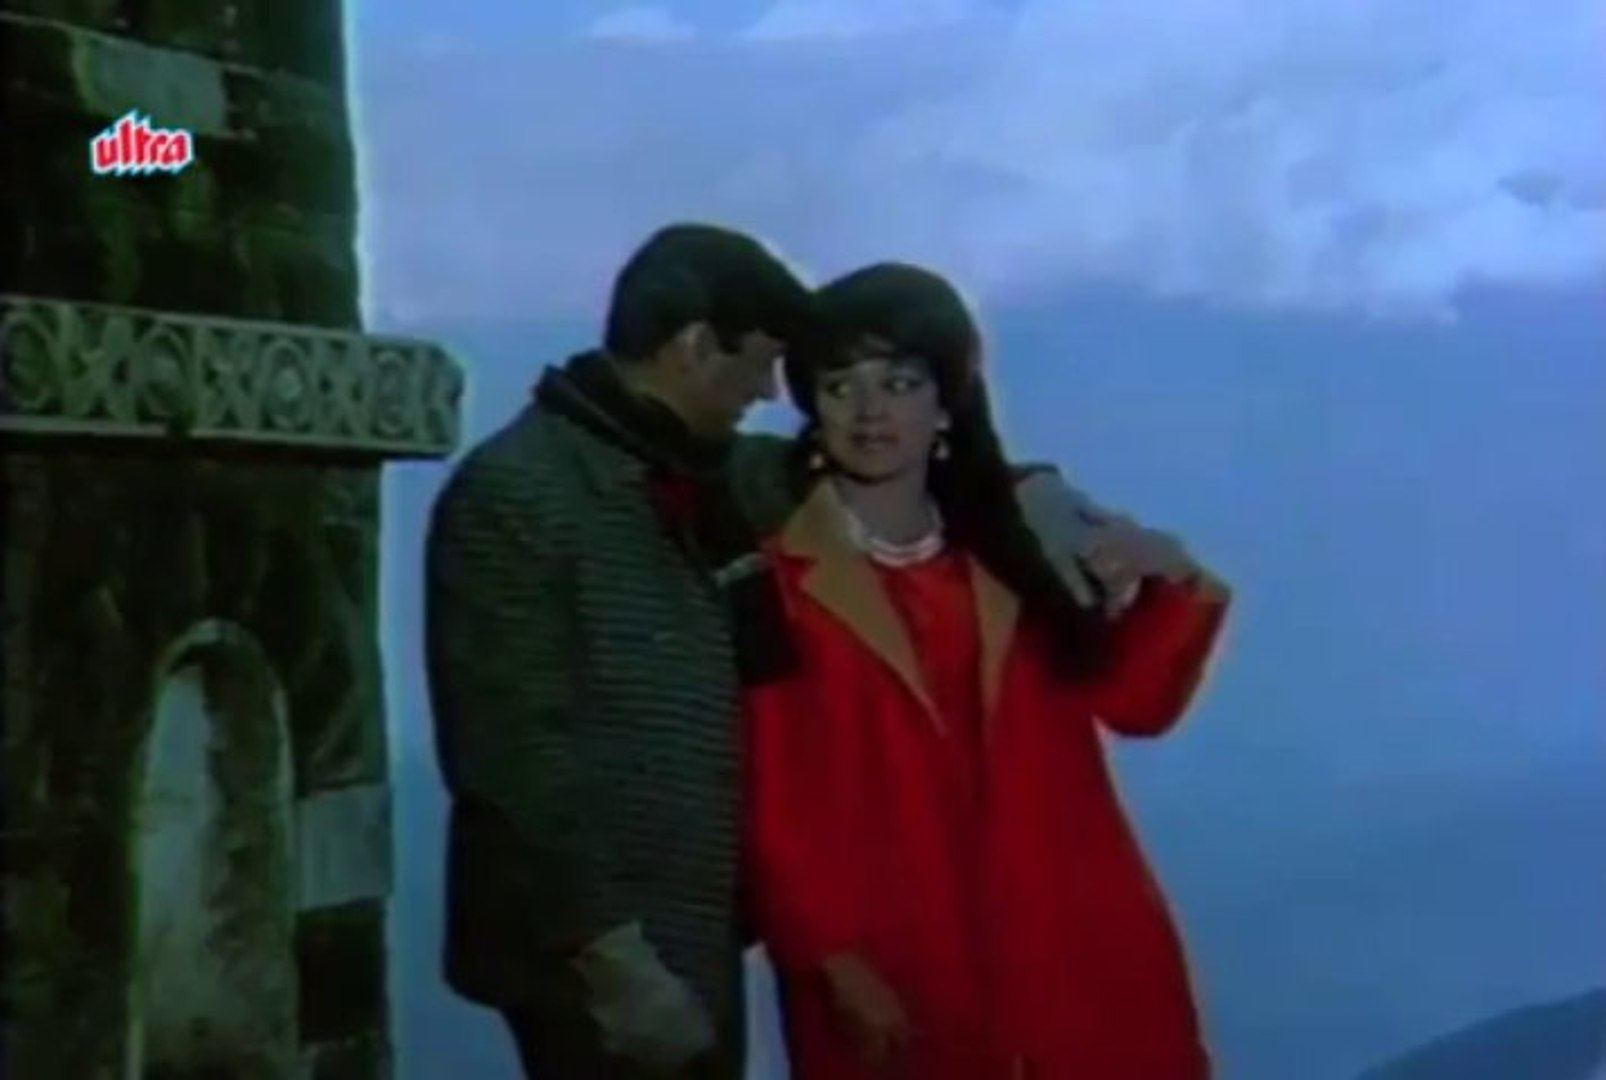 Ankhon Ankhon Mein - Dev Anand, Asha Parekh, Mahal Song